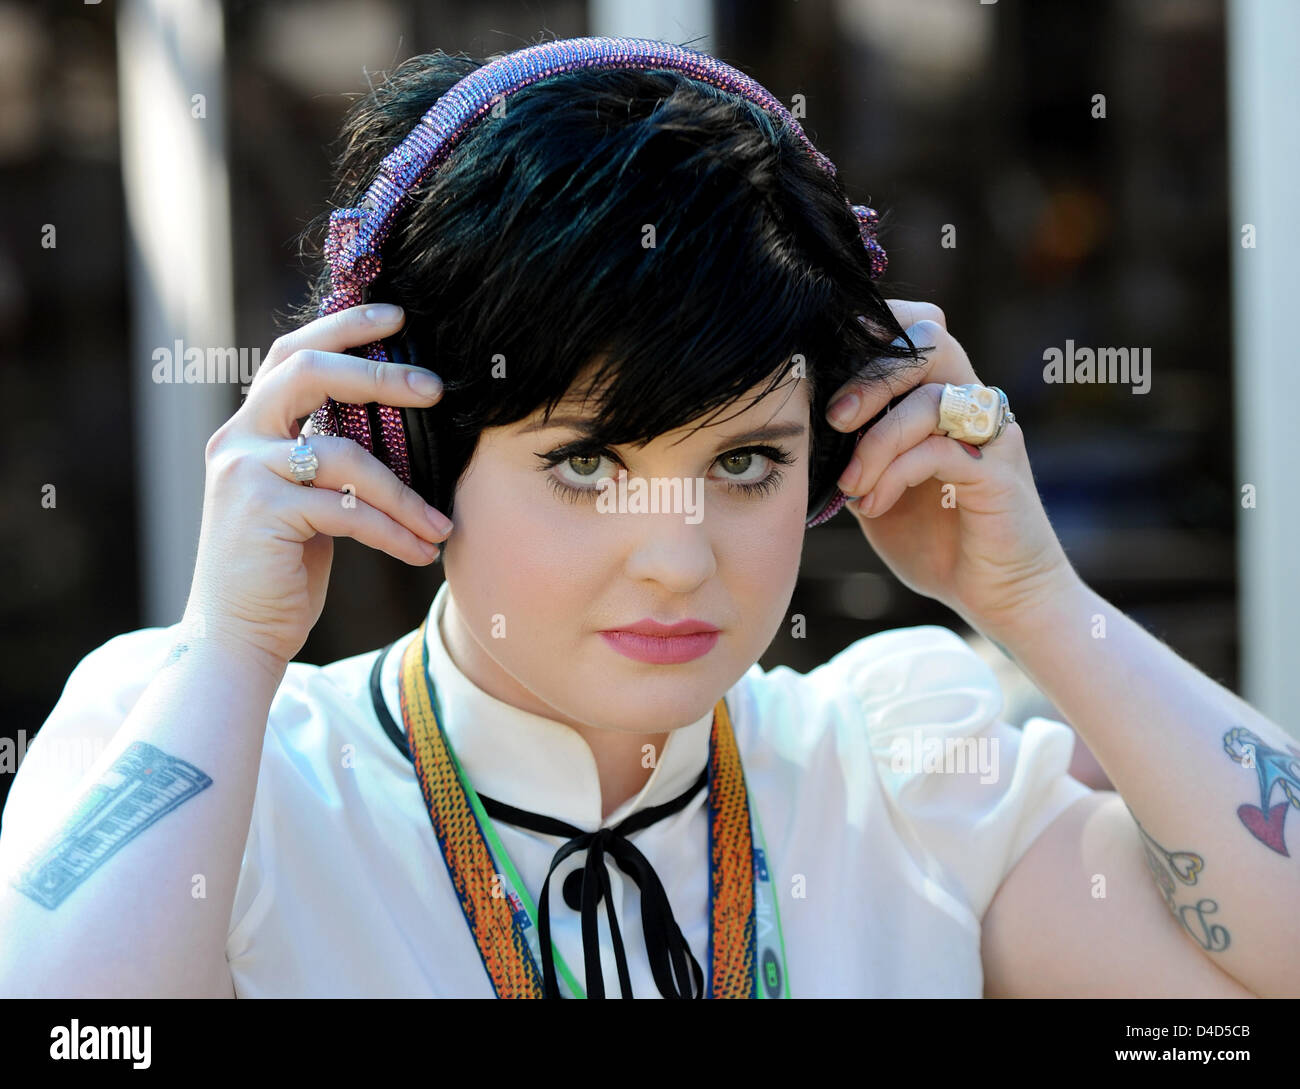 British singer Kelly Osbourne, daughter of rock music's Prince of Darkness Ozzy Osbourne, pictured at the Formula - Stock Image